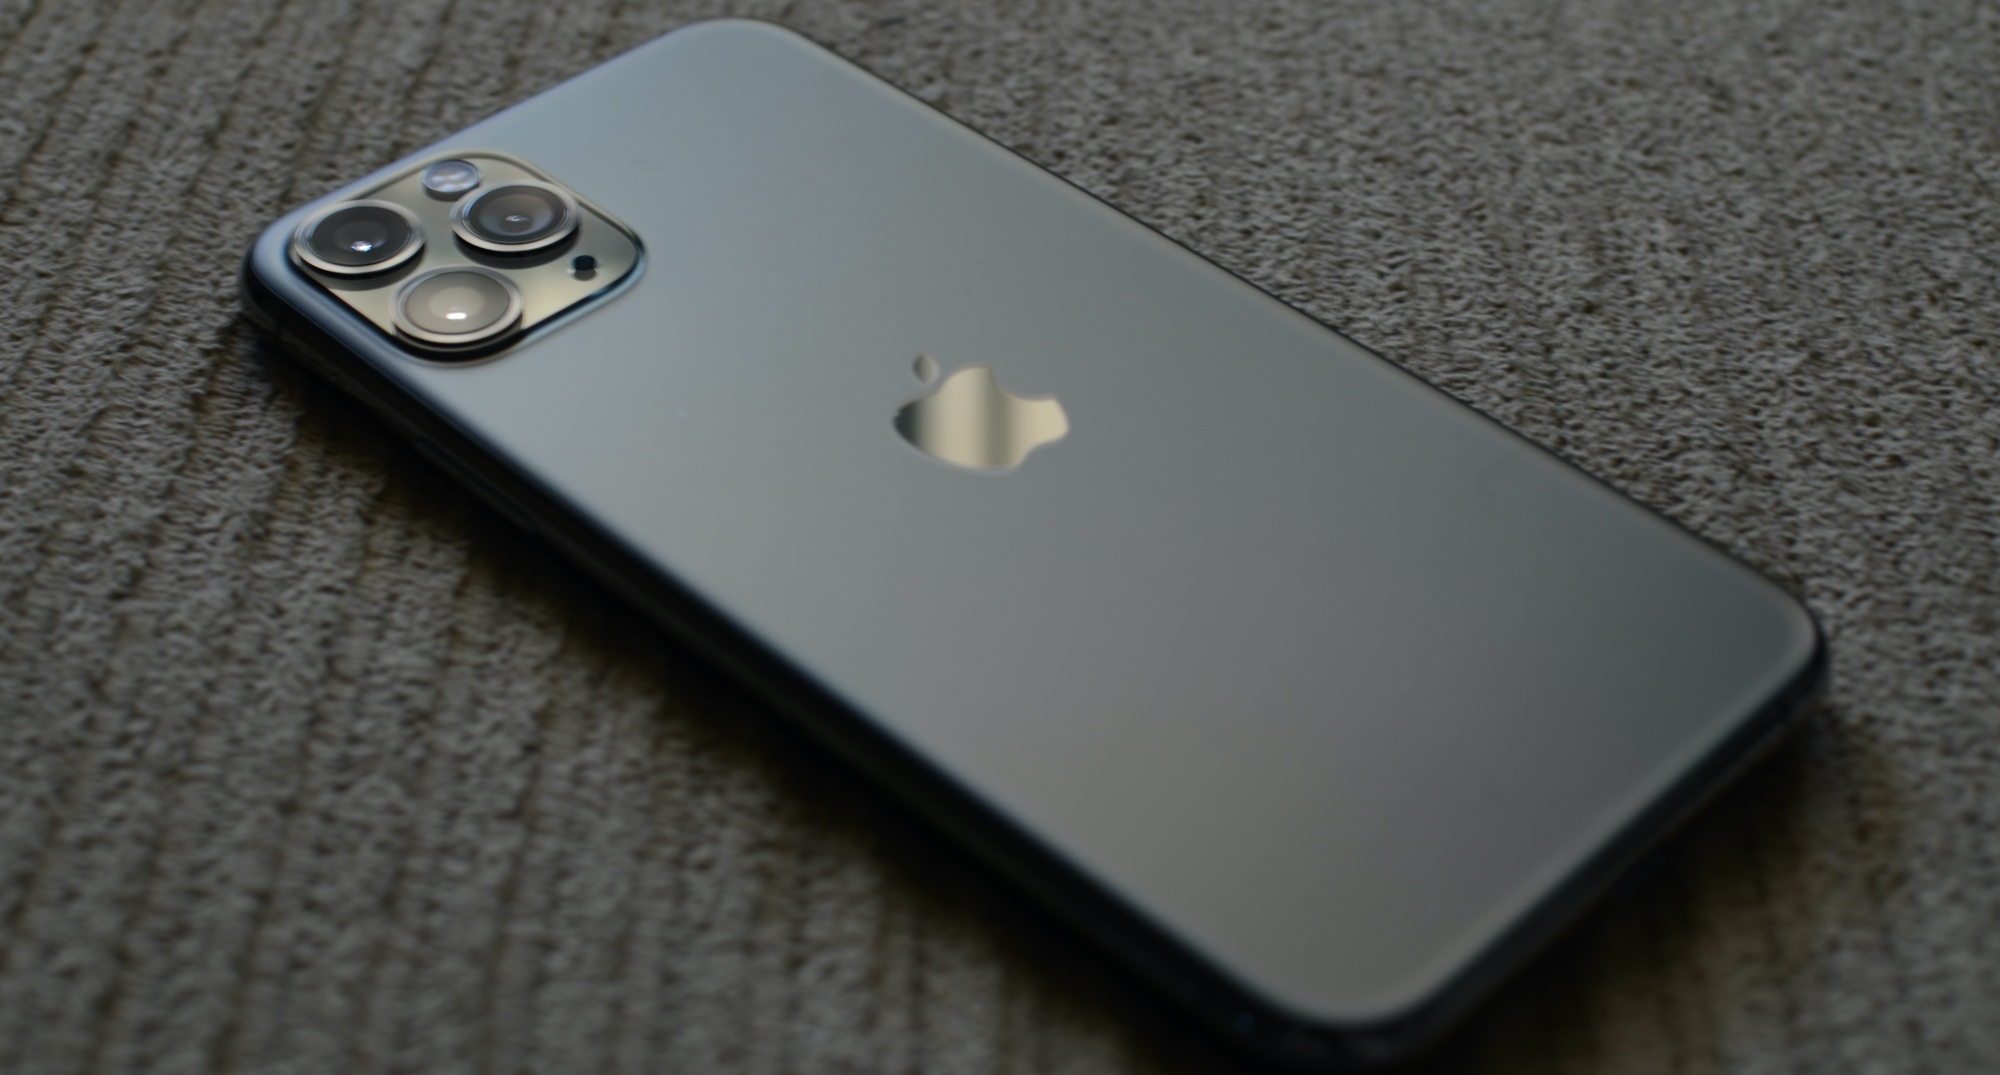 Apple iPhone 12 Release Date Updates Coronavirus Pandemic to Delay the Next iPhone Launch